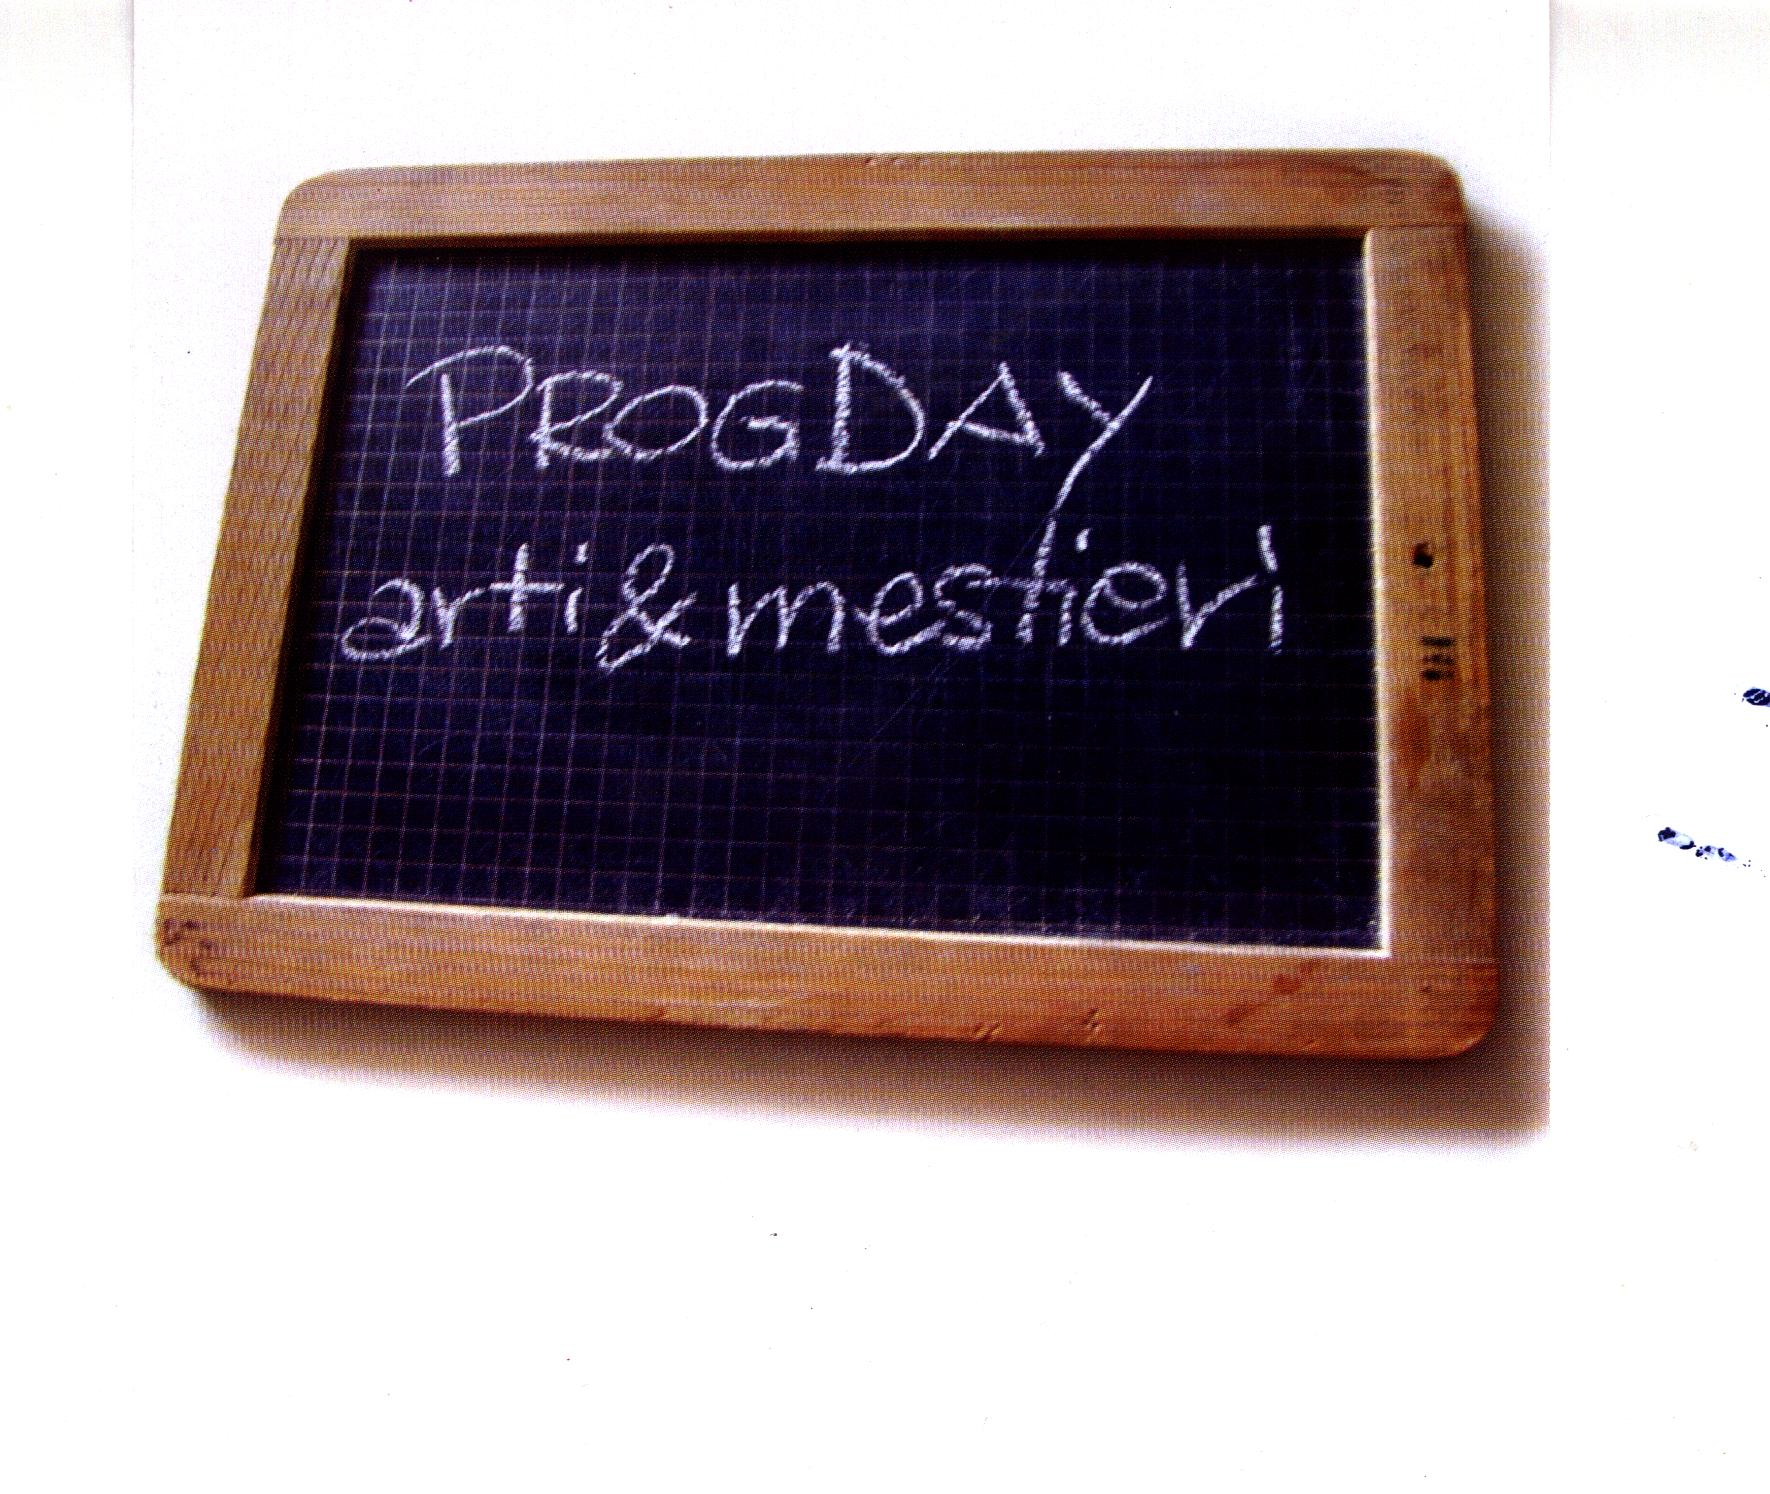 ARTI E MESTIERI - PROG DAY (MINI CD)